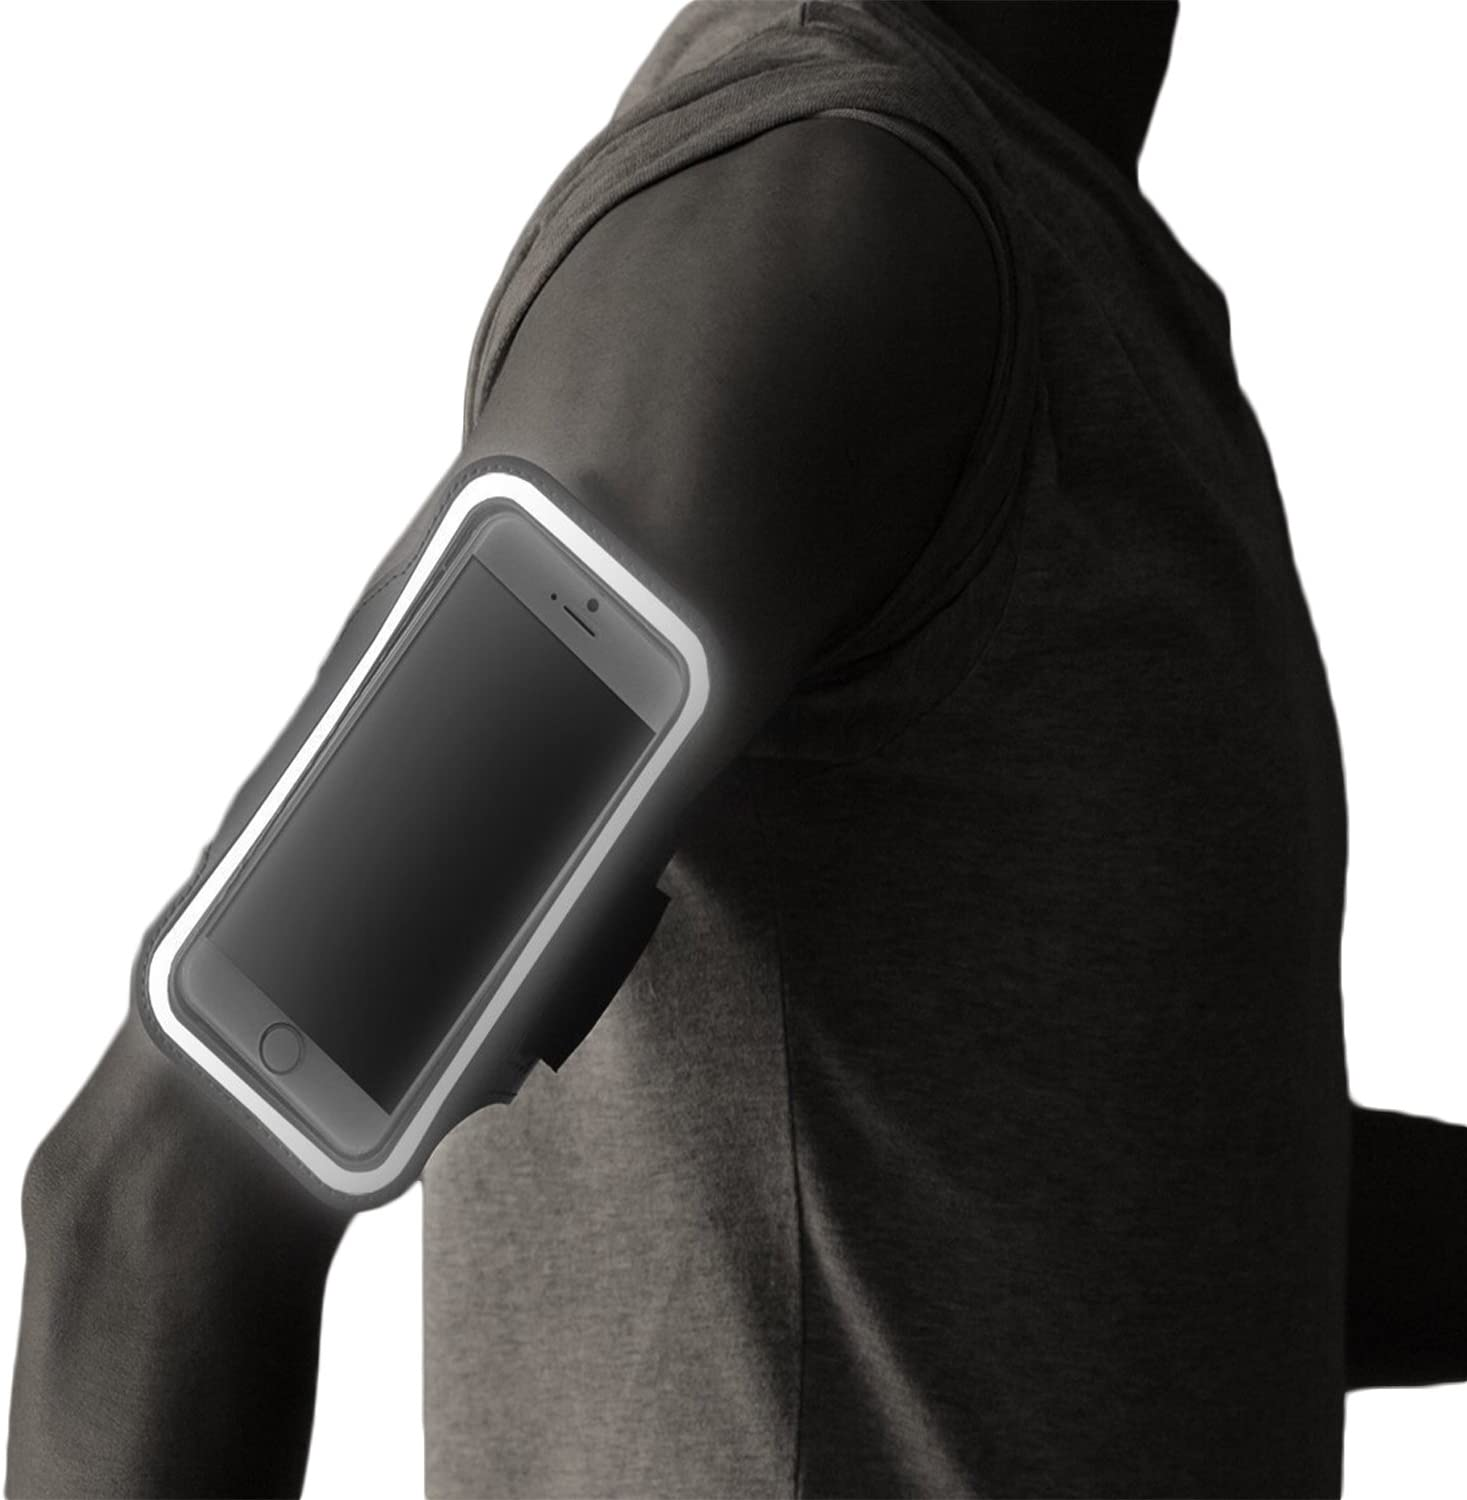 Waterproof iPhone SE 2020 Running Armband Sports Phone Case Holder for Runners